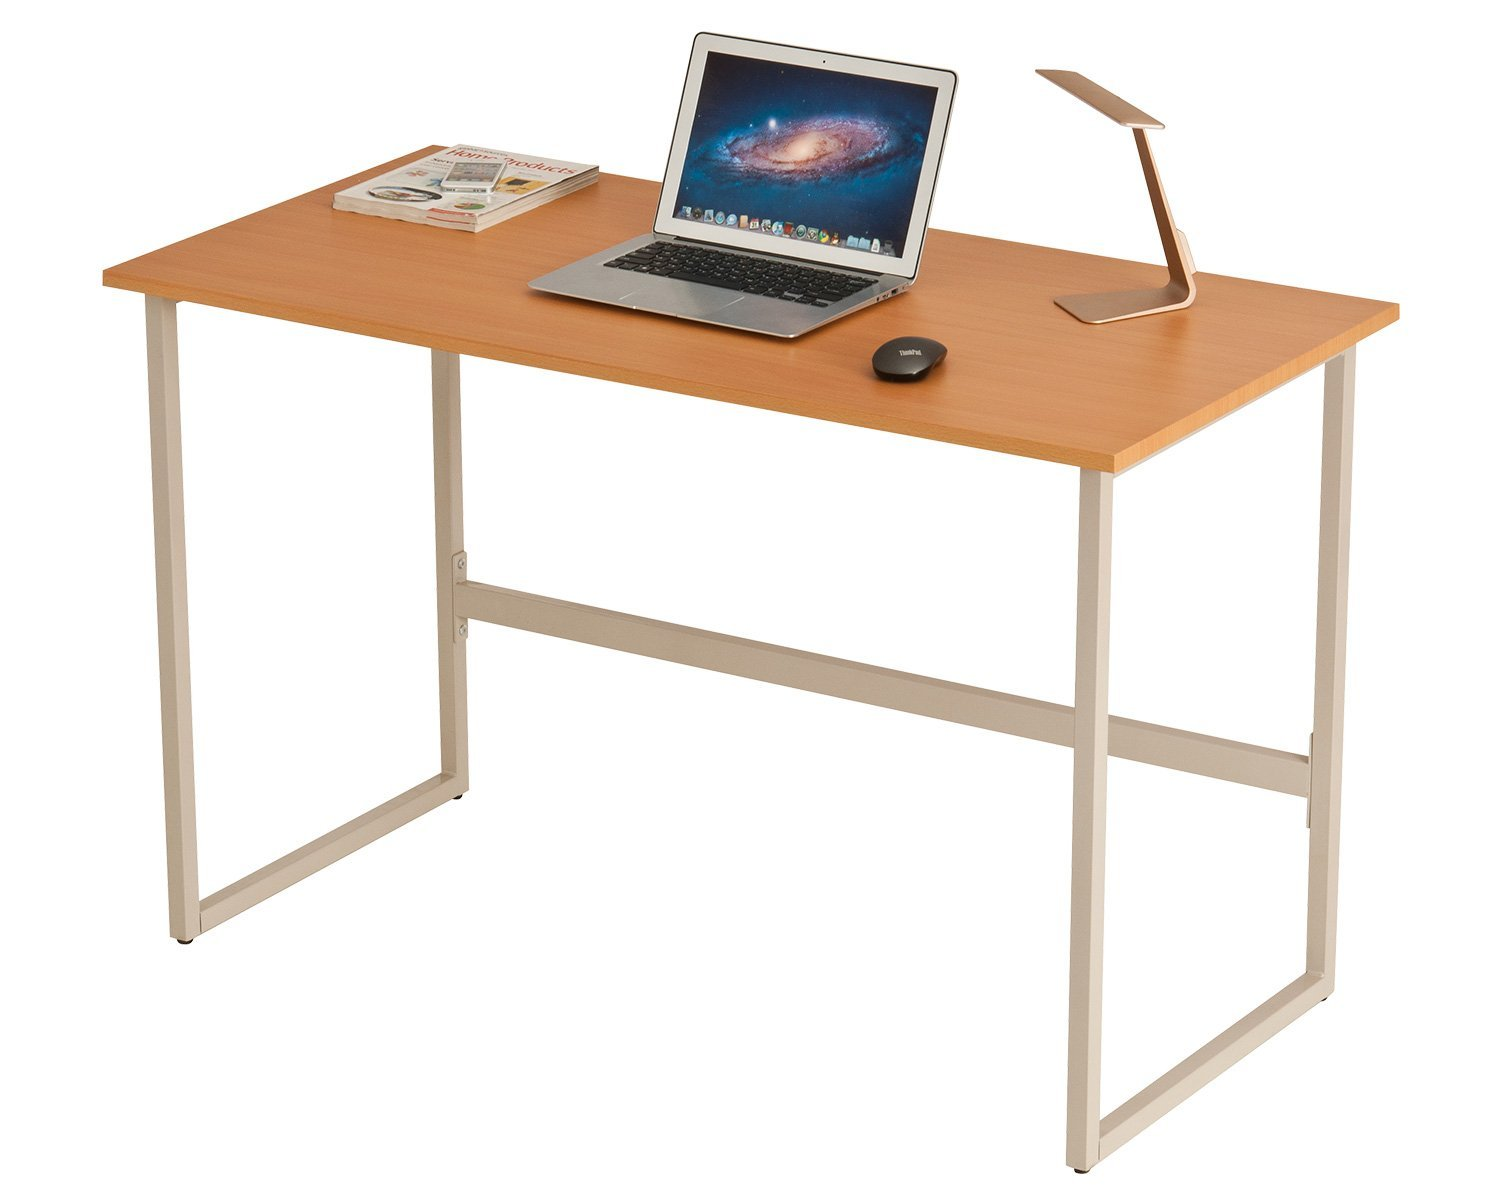 ProHT Small Compact Computer Writing Desk, Laptop/PC/Work/Writing/Table/Workstation Modern Office Desk for Small Place,w/ Durable Frame and CARB Certified Material .(Beech Ivory 05023A)